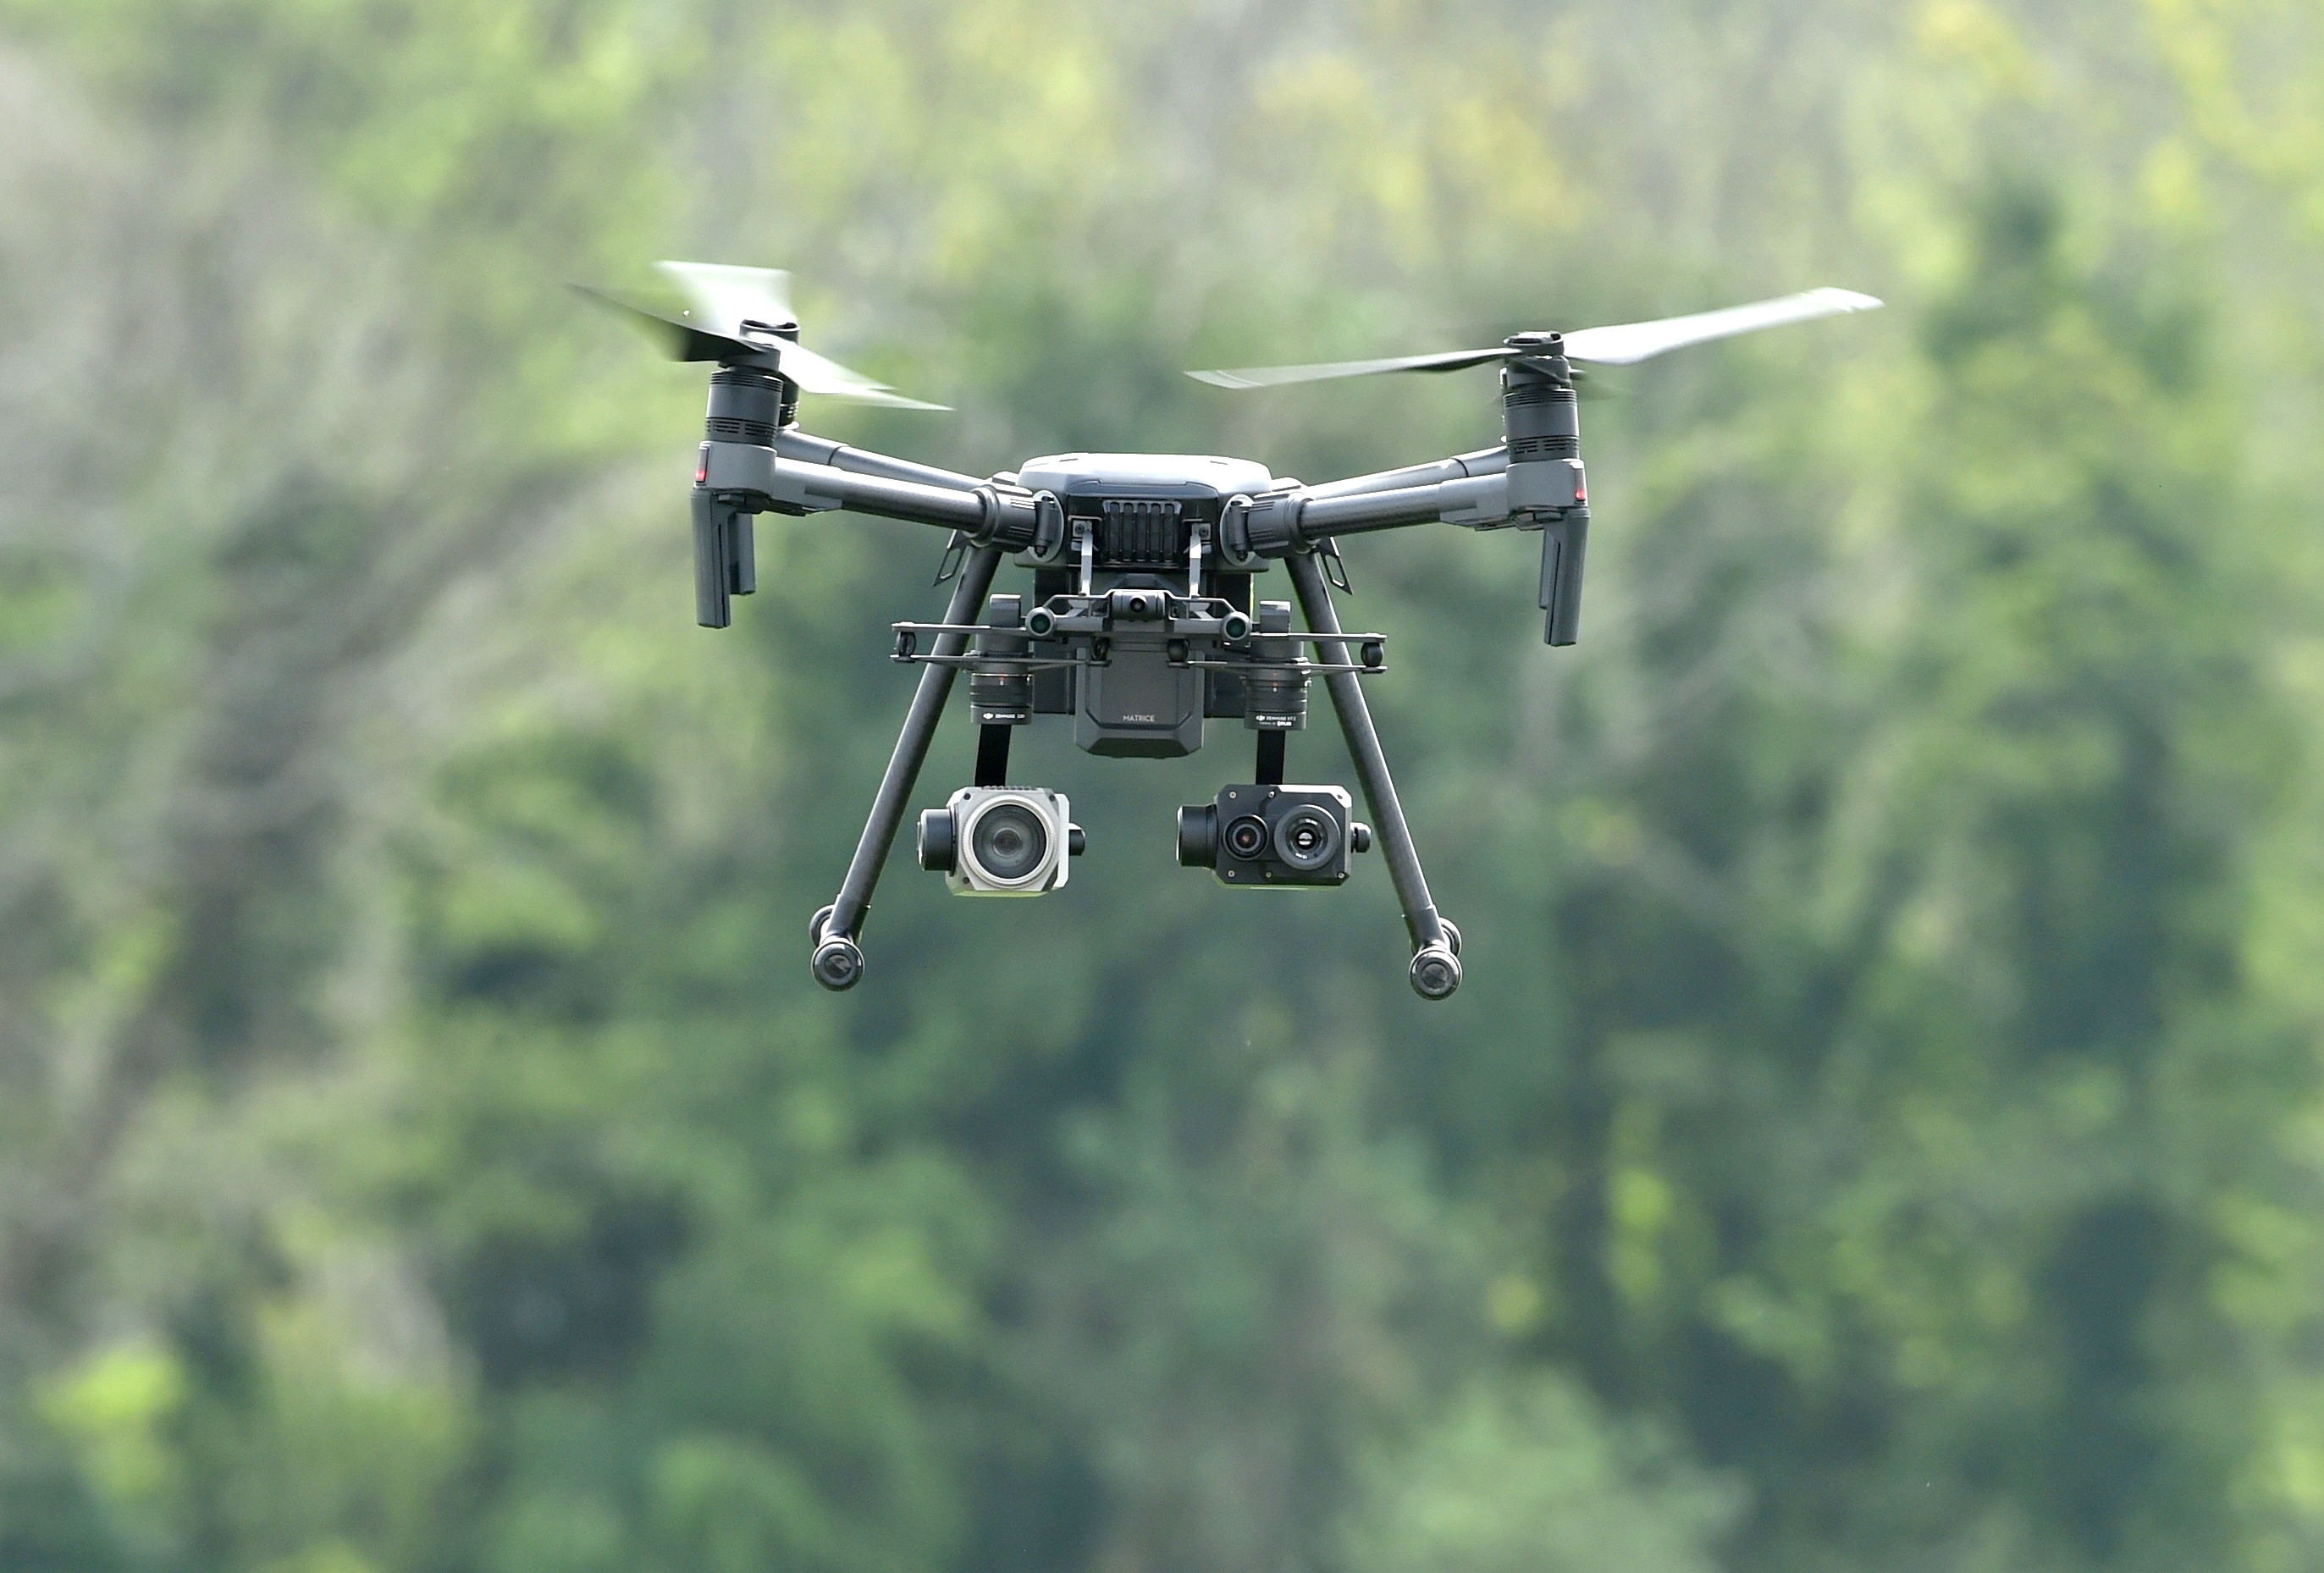 Police Scotland's Remotely Piloted Aircraft Systems